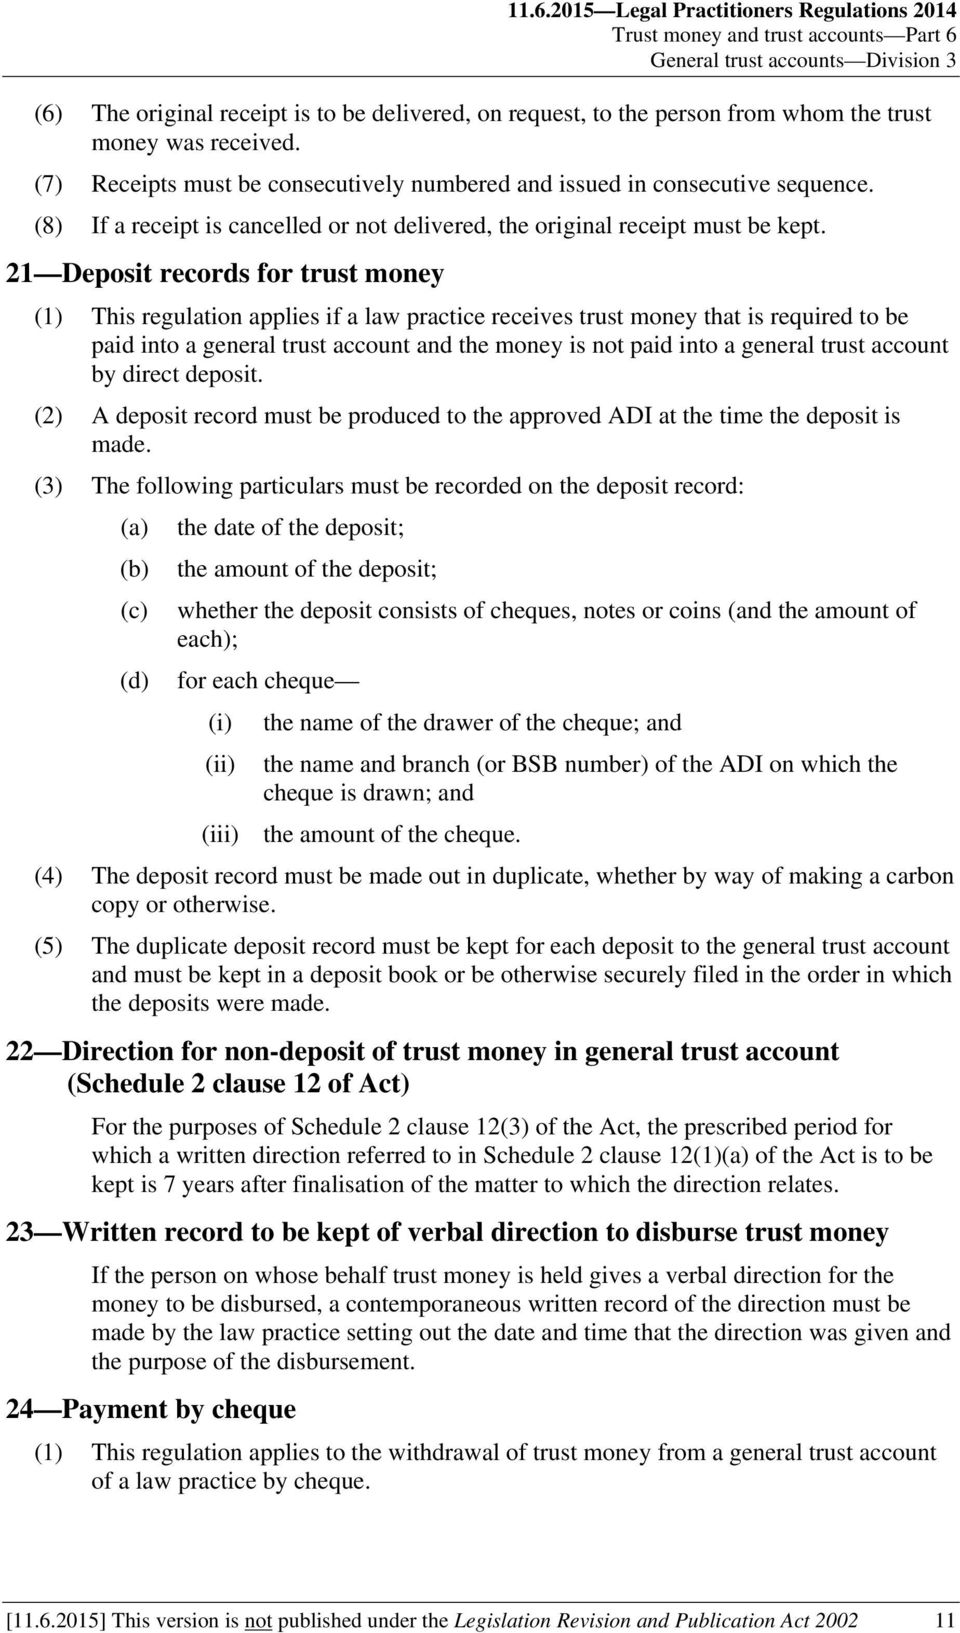 21 Deposit records for trust money (1) This regulation applies if a law practice receives trust money that is required to be paid into a general trust account and the money is not paid into a general